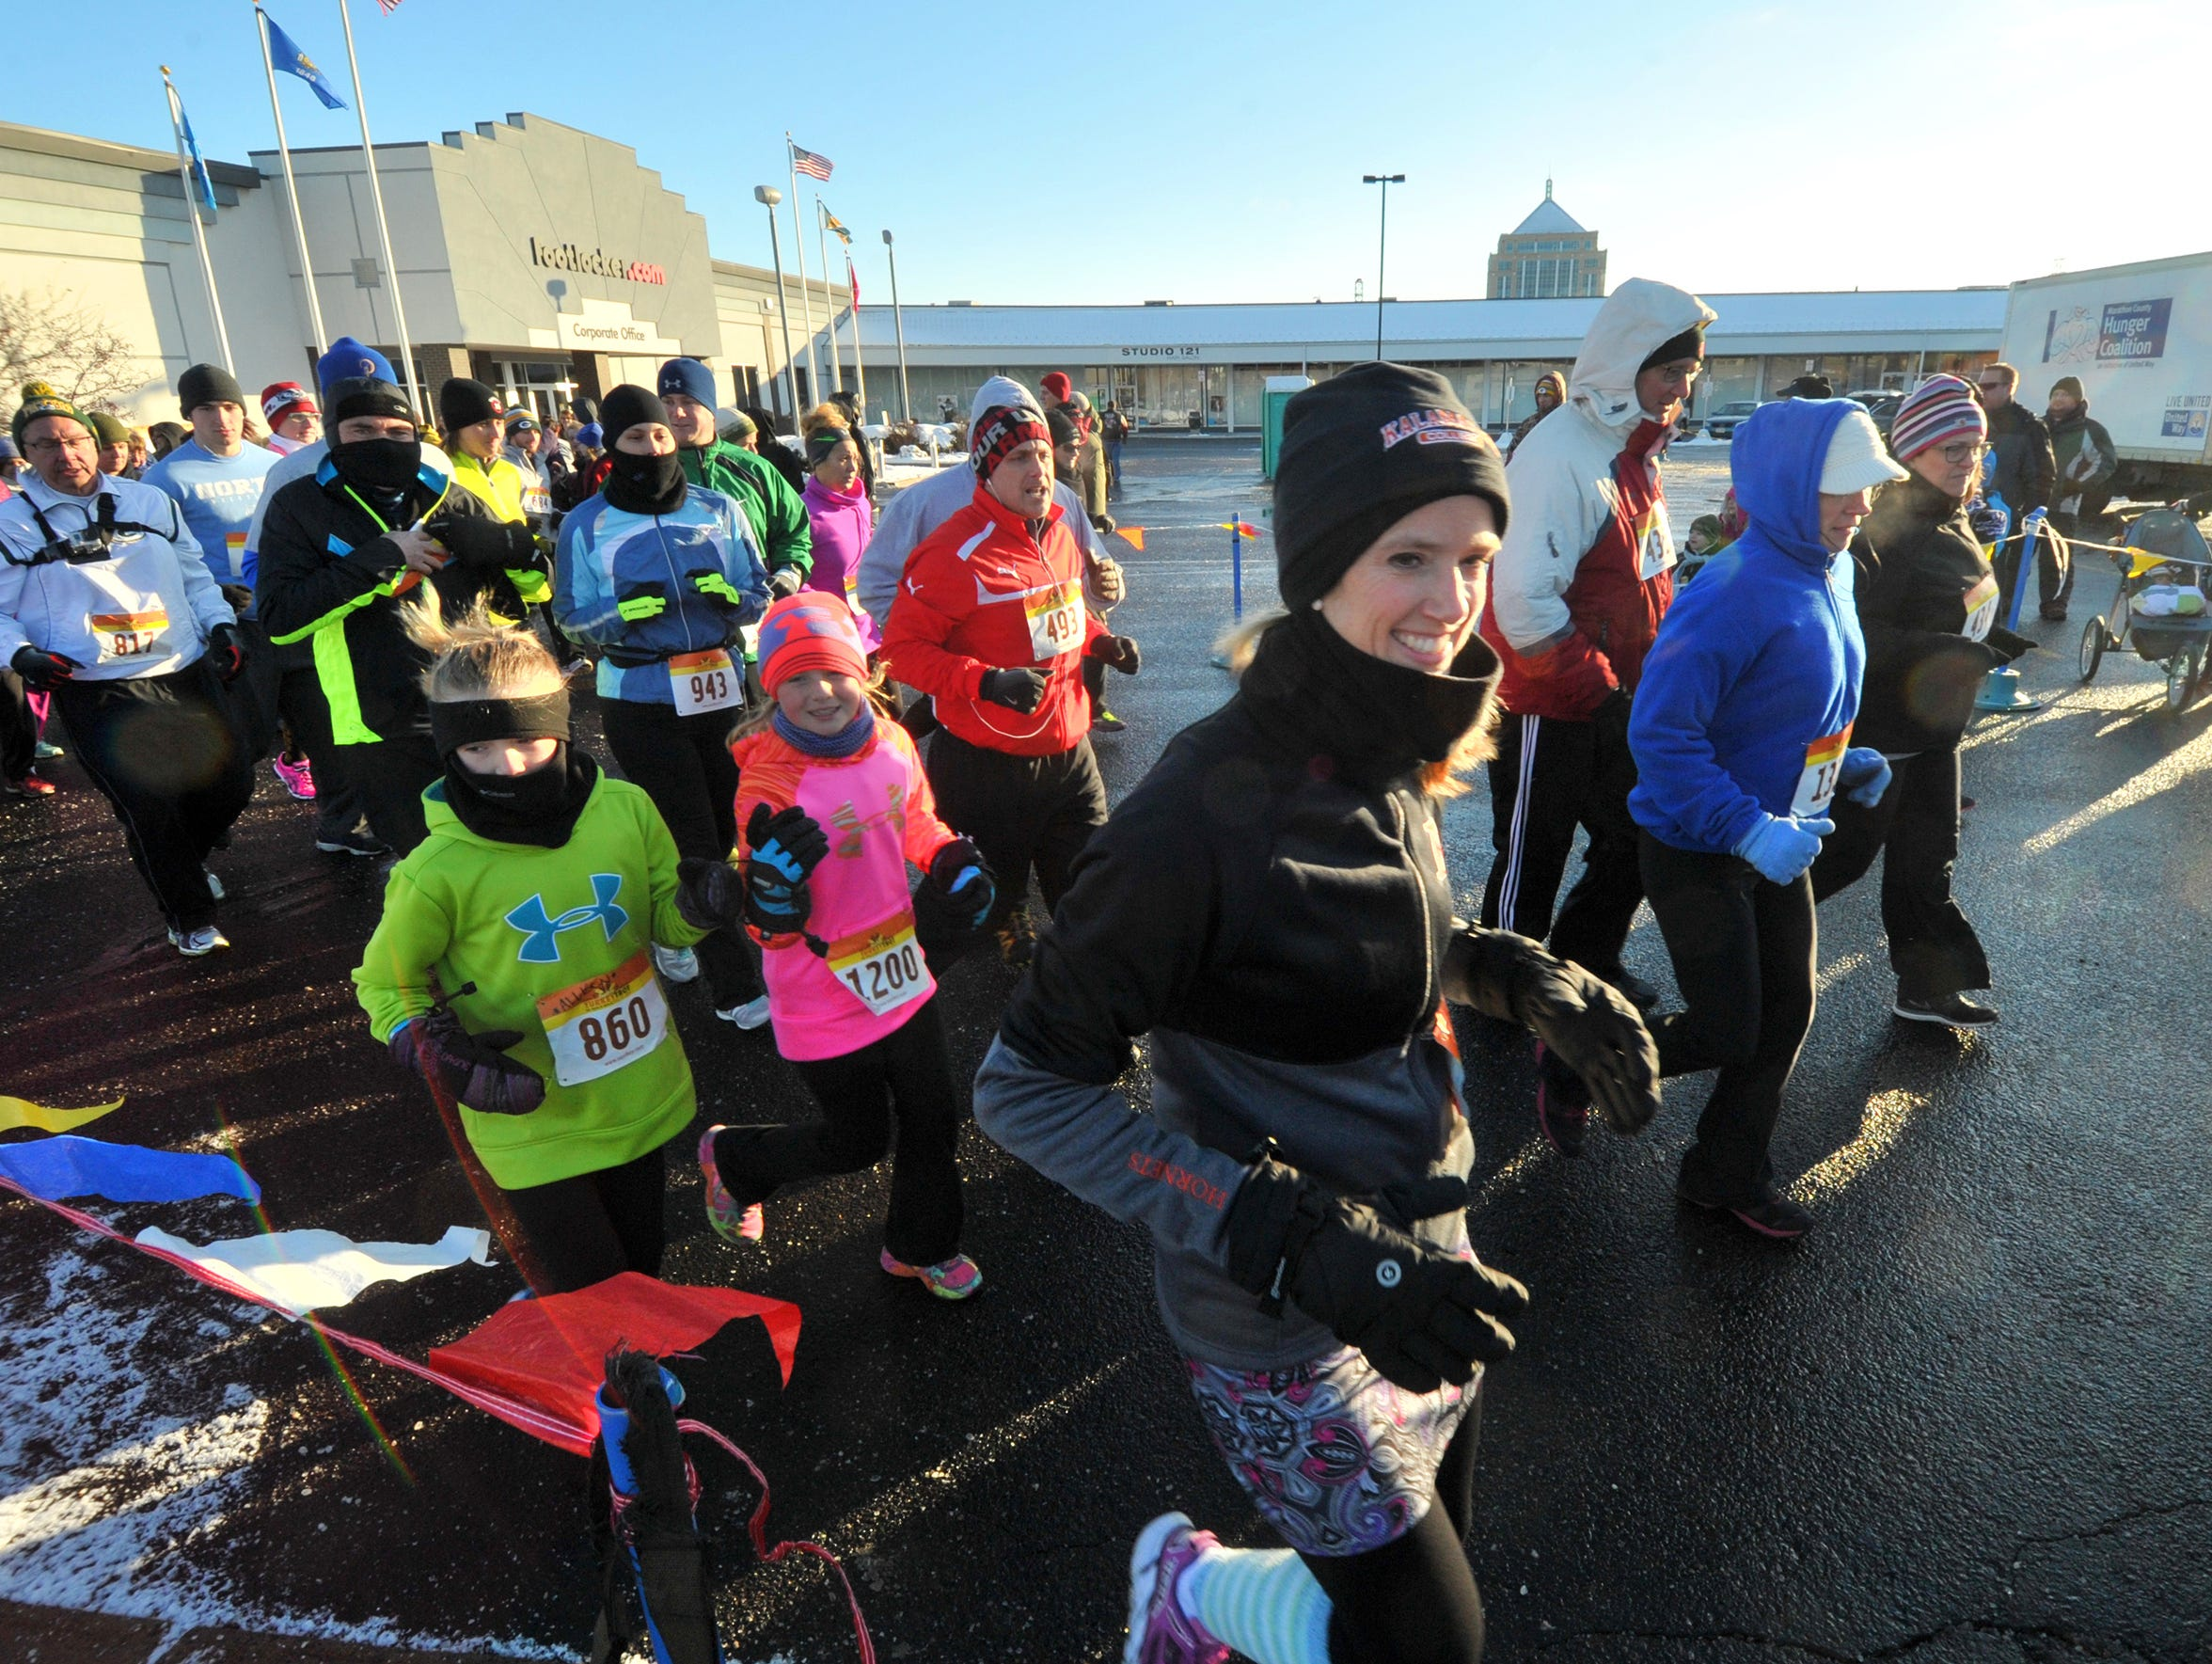 Hundreds of participants run Thursday's fifth annual